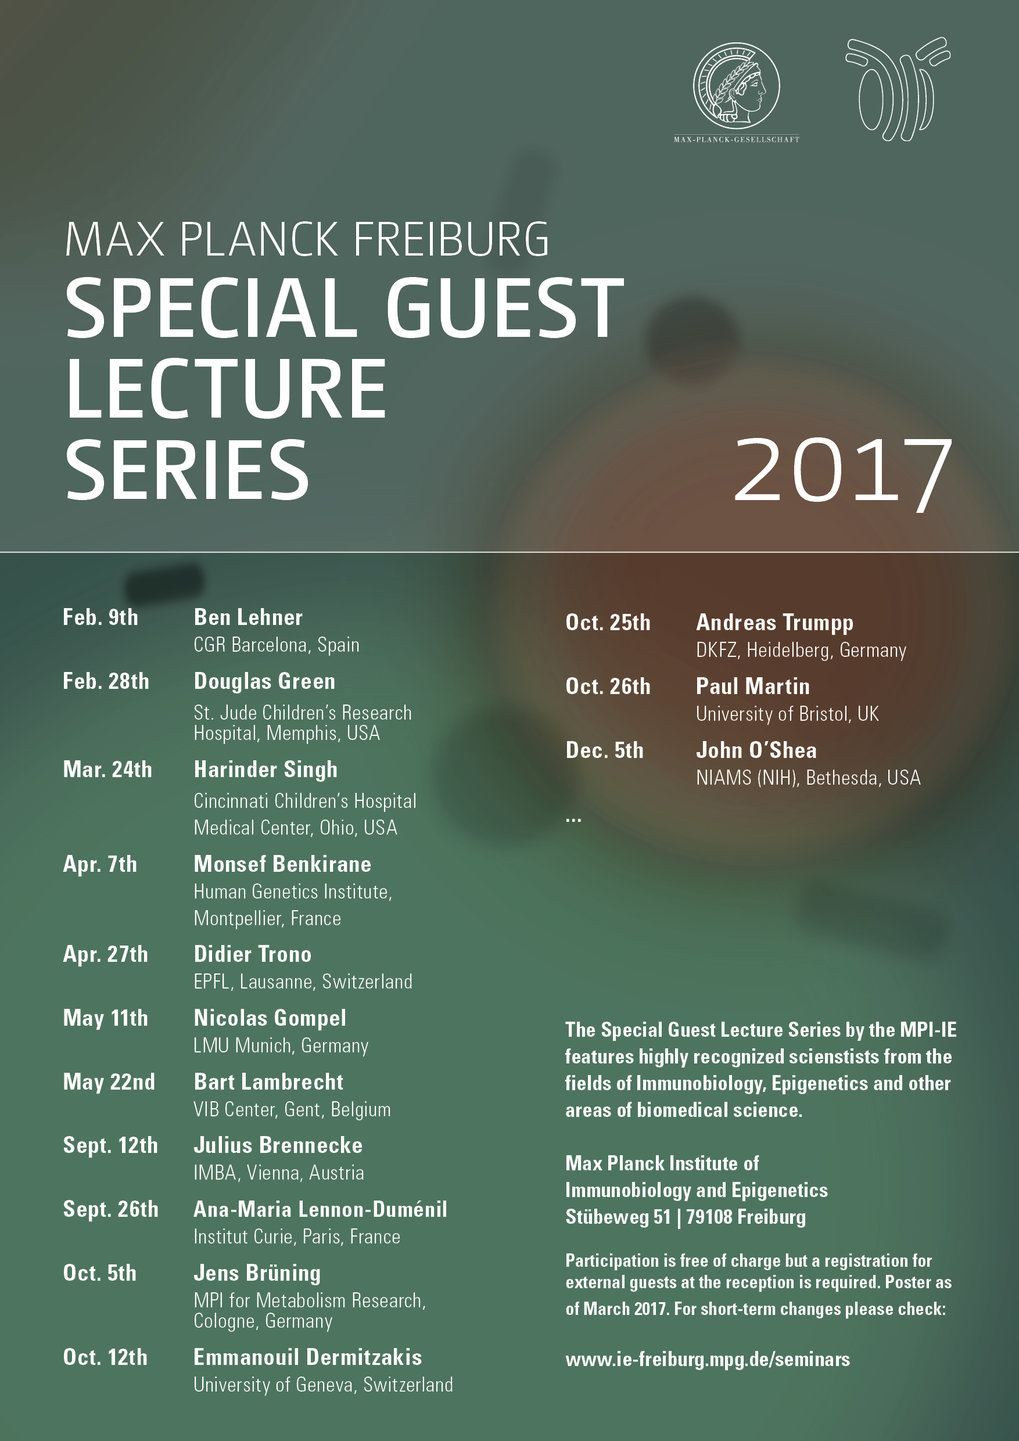 Special Guest Lecture Series 2017